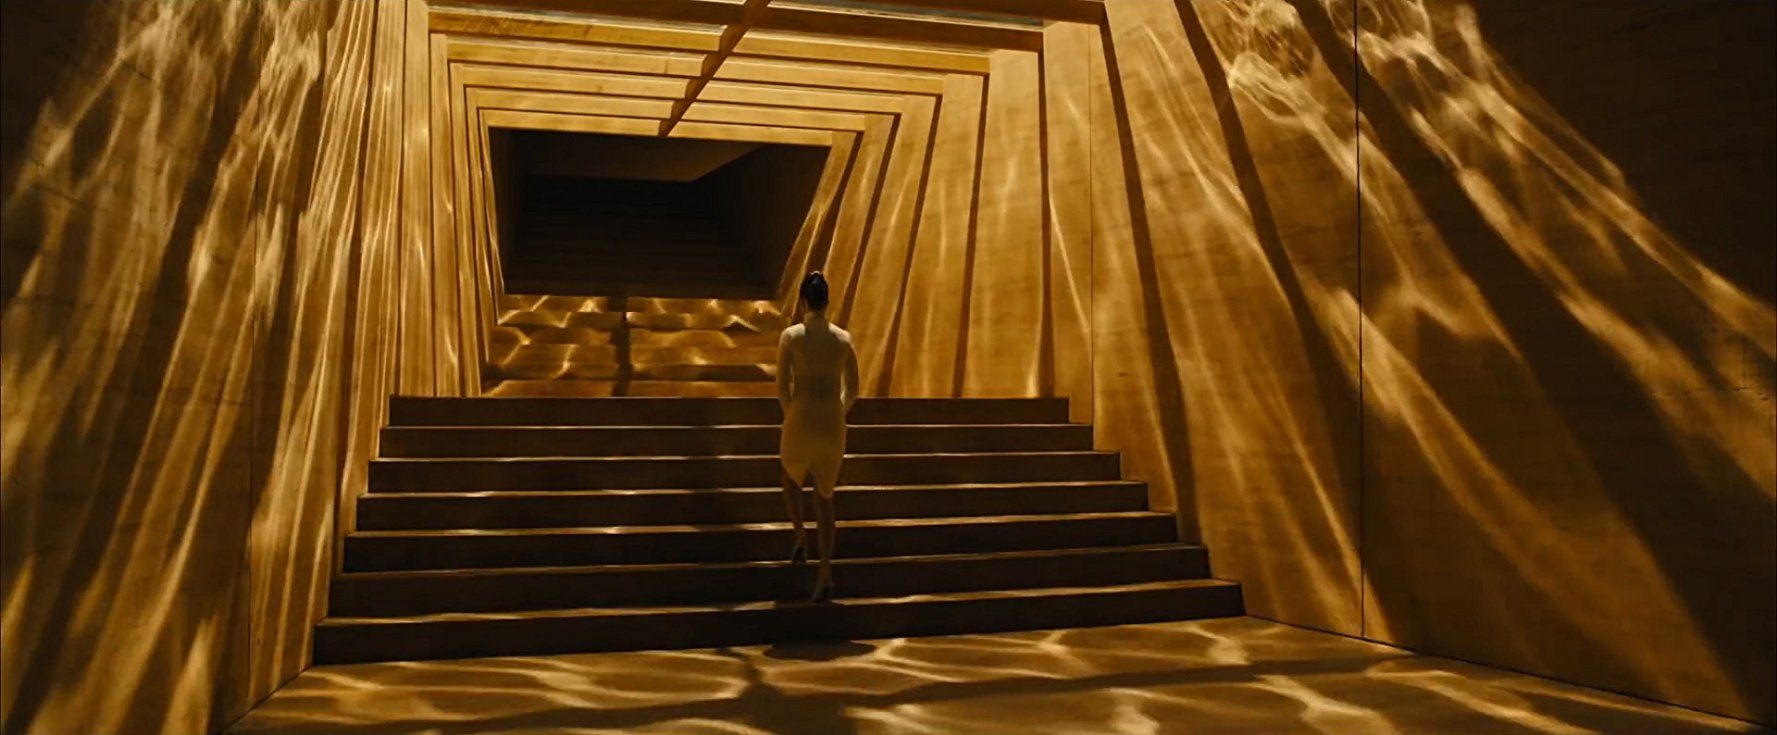 Life Imitates Art 6 Key Artefacts In Blade Runner 2049 And The Hidden Stories They Tell Film And Furniture In 2020 Blade Runner Blade Runner 2049 Architecture